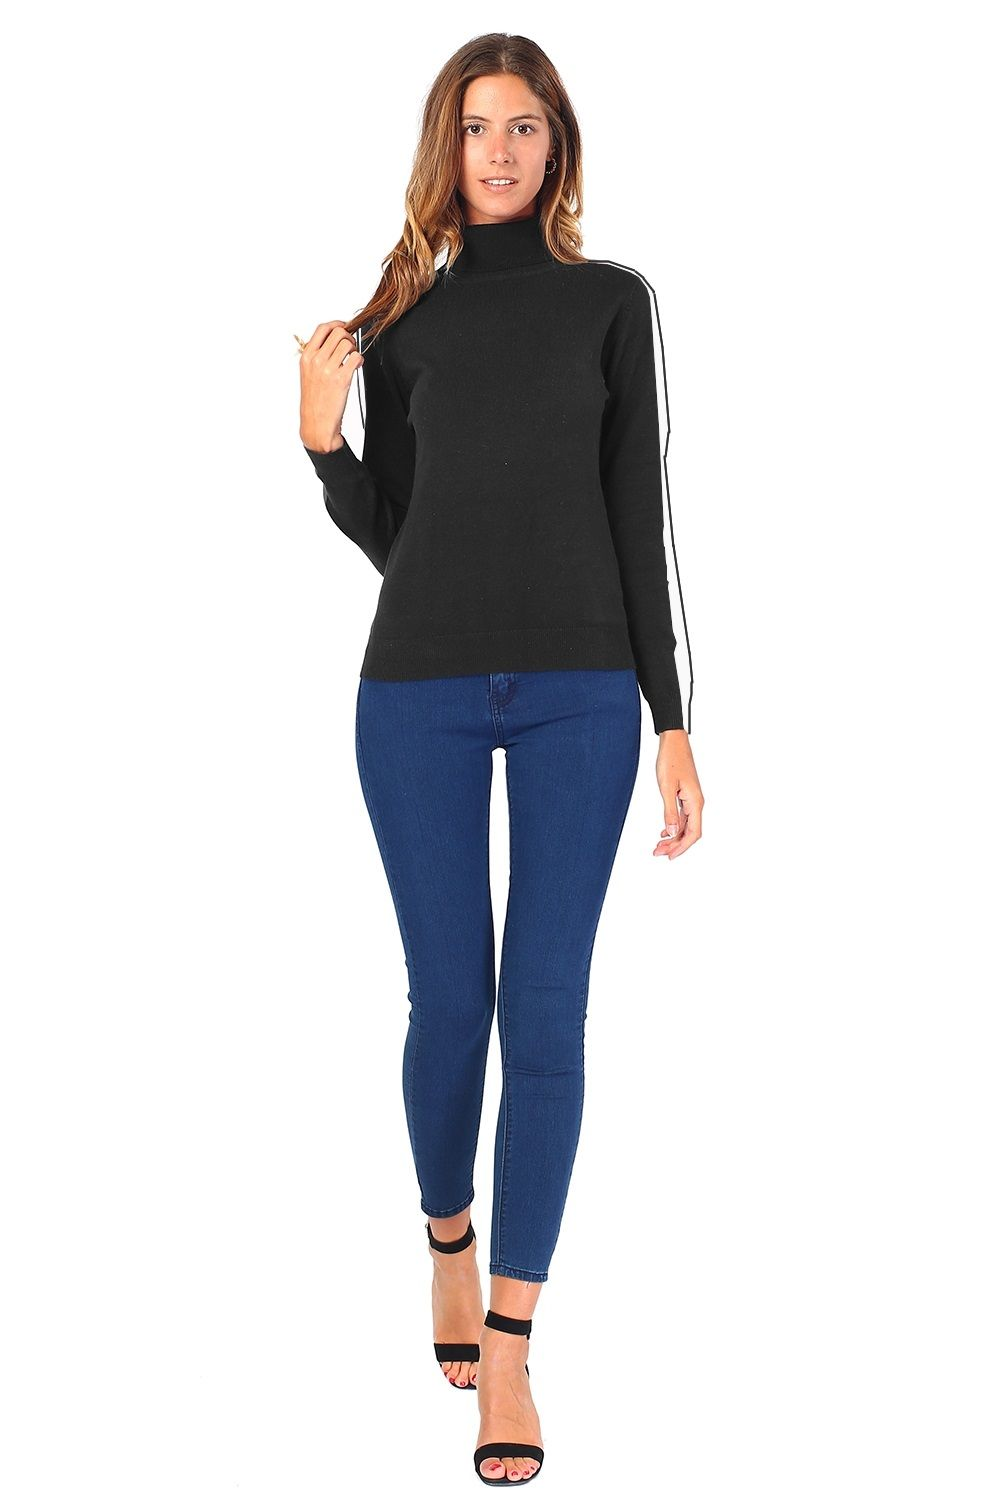 William De Faye Turtleneck Sweater with Two-tone Sleeves in Black